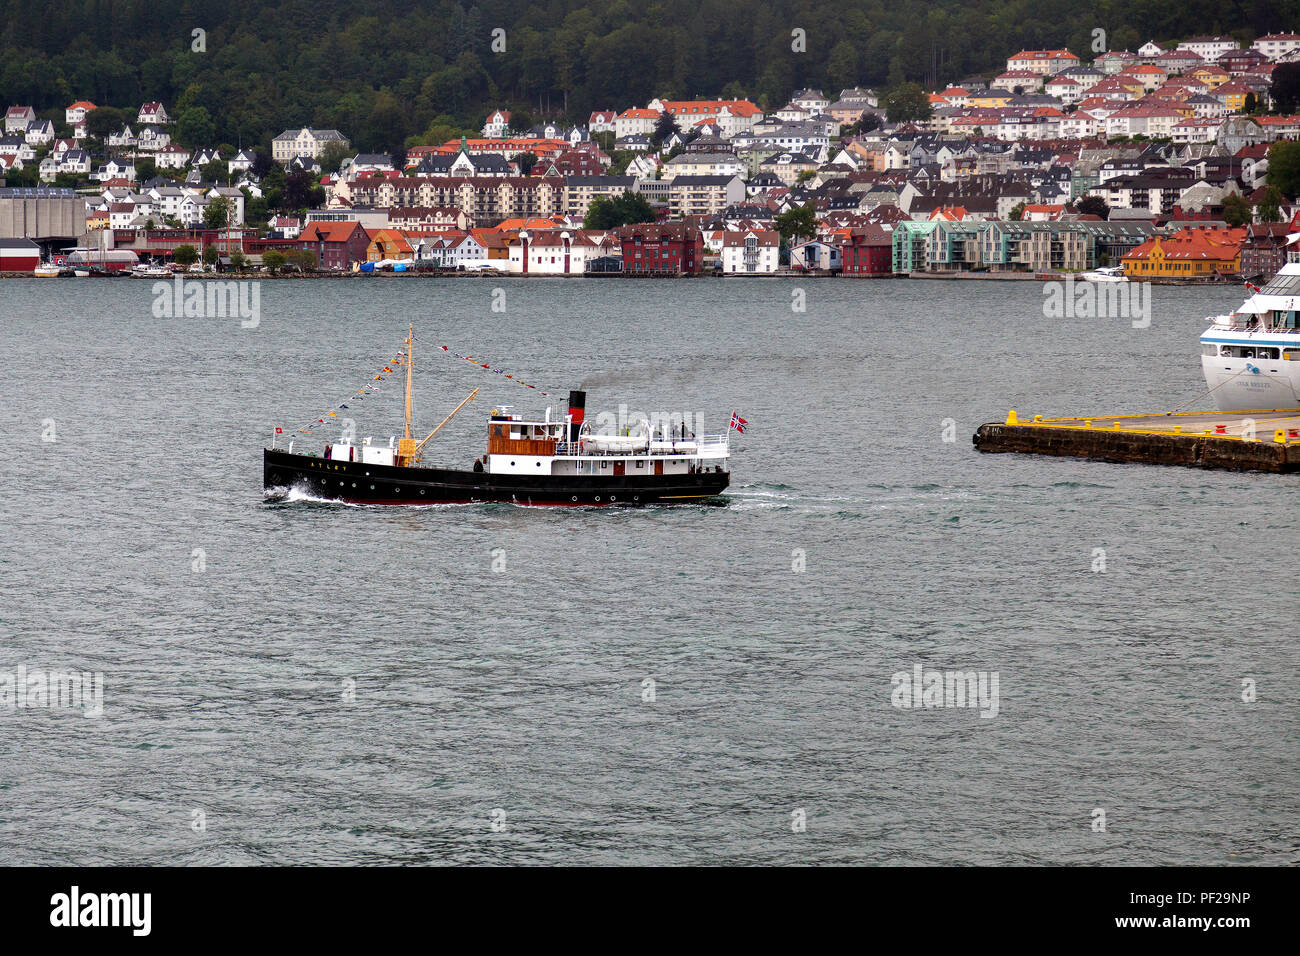 Veteran passenger steamship Atloy (built 1931) sailing from the port of Bergen, Norway to Byfjorden on a grey and rainful day. Fjordsteam 2018,. - Stock Image